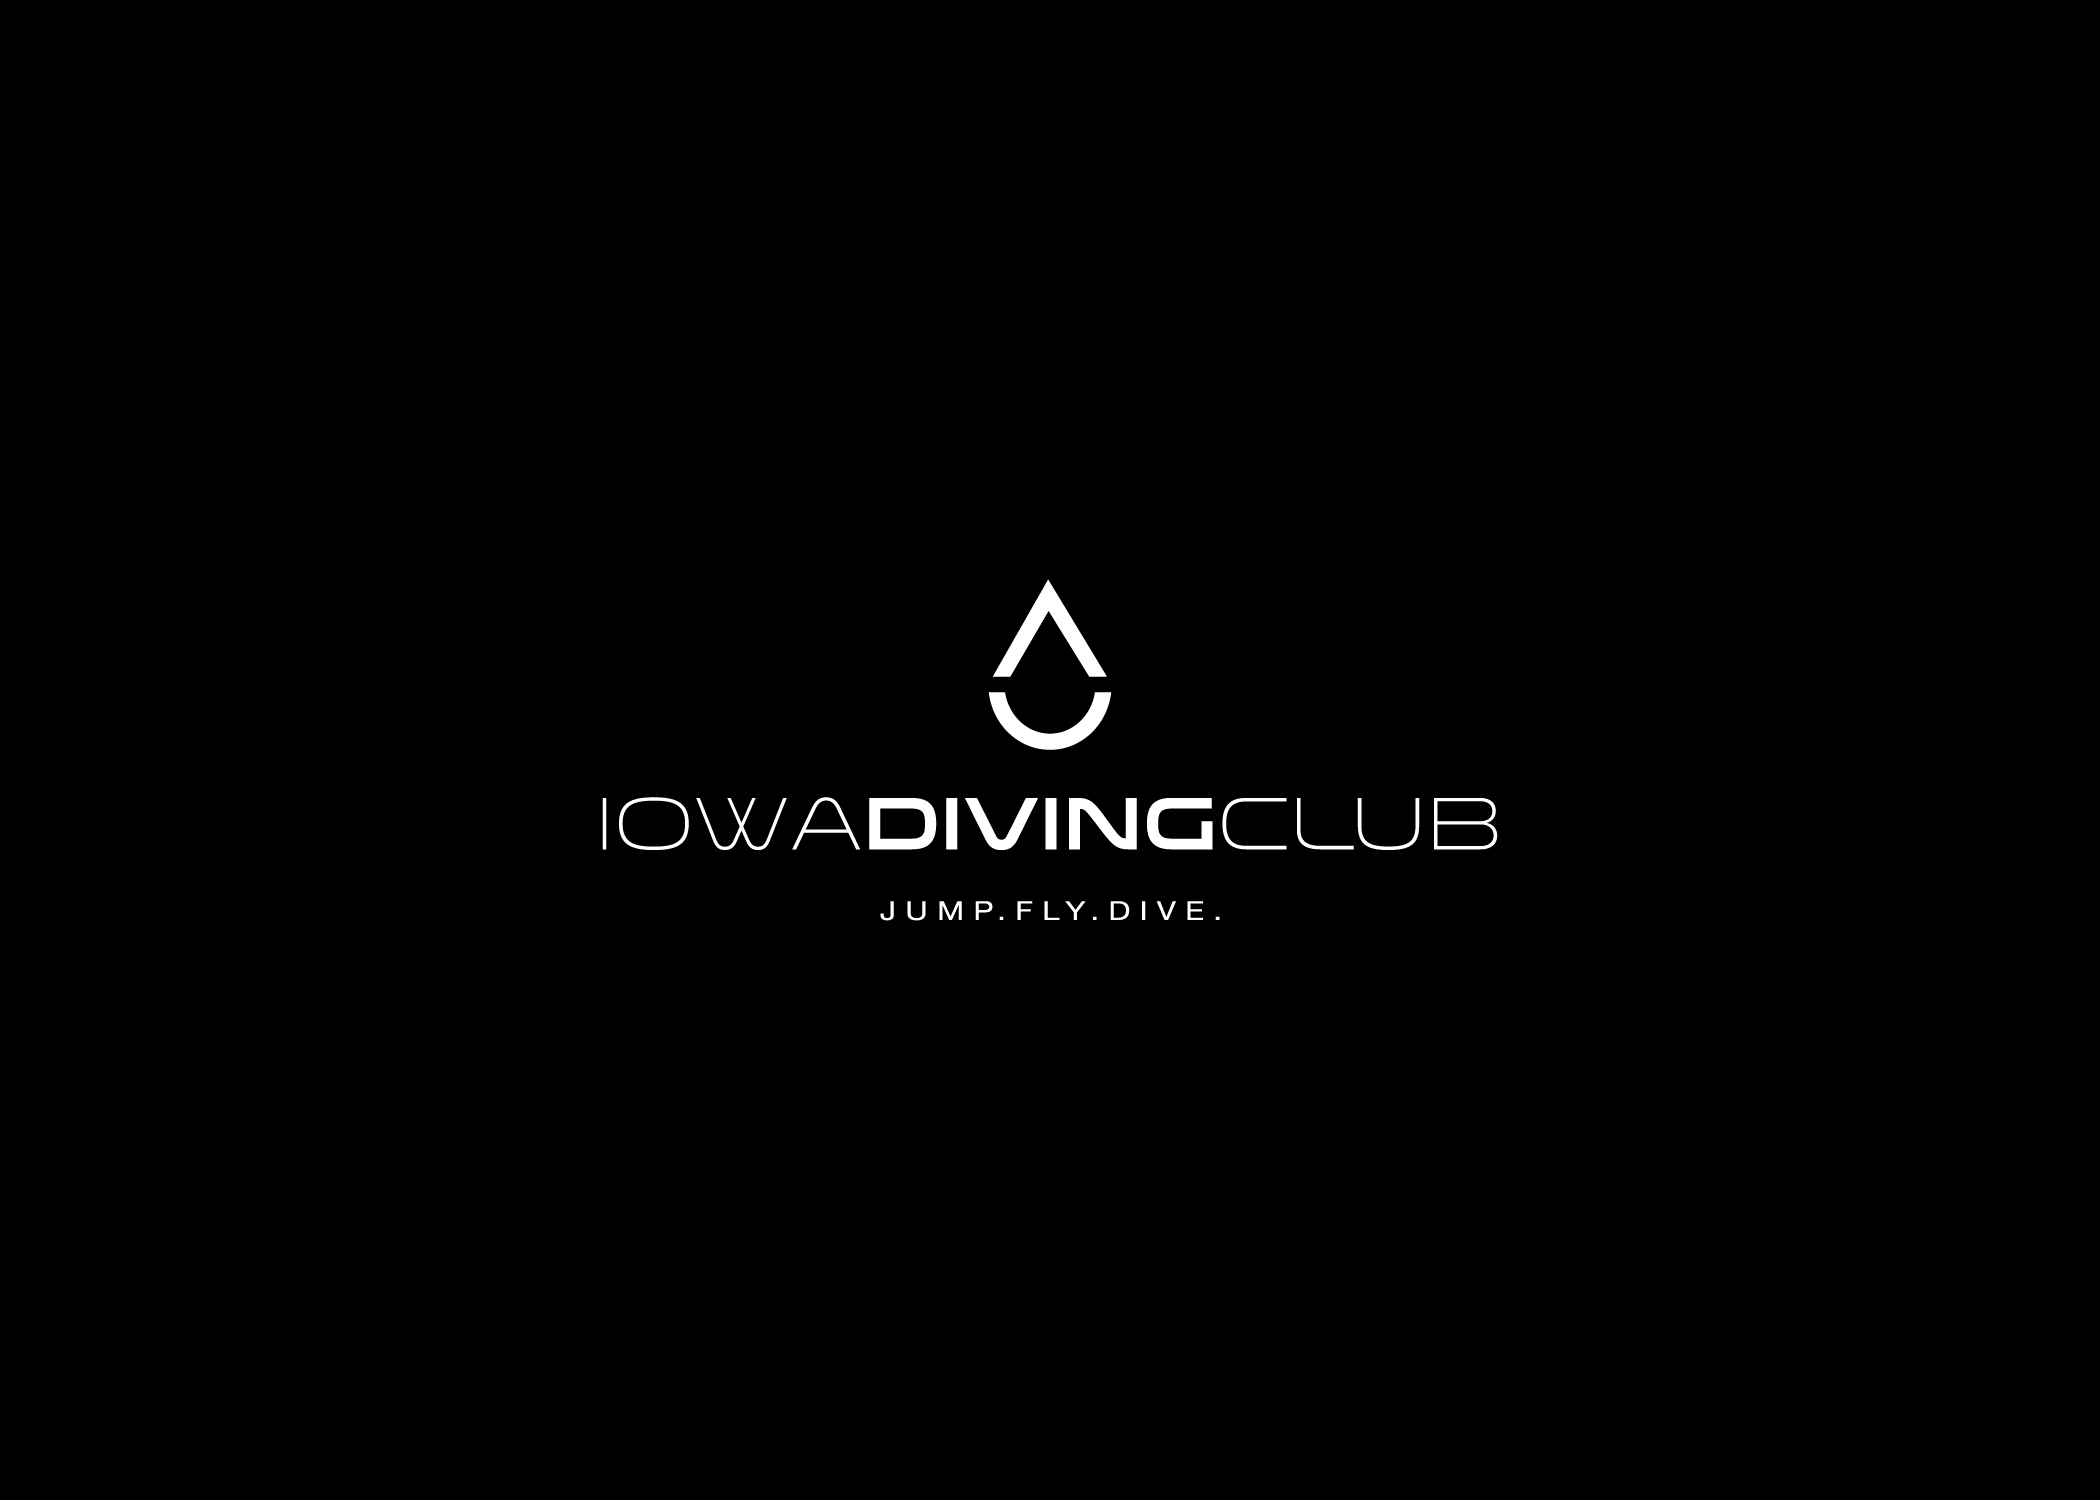 Iowa Diving Club For Web use 150DPI-08.jpg